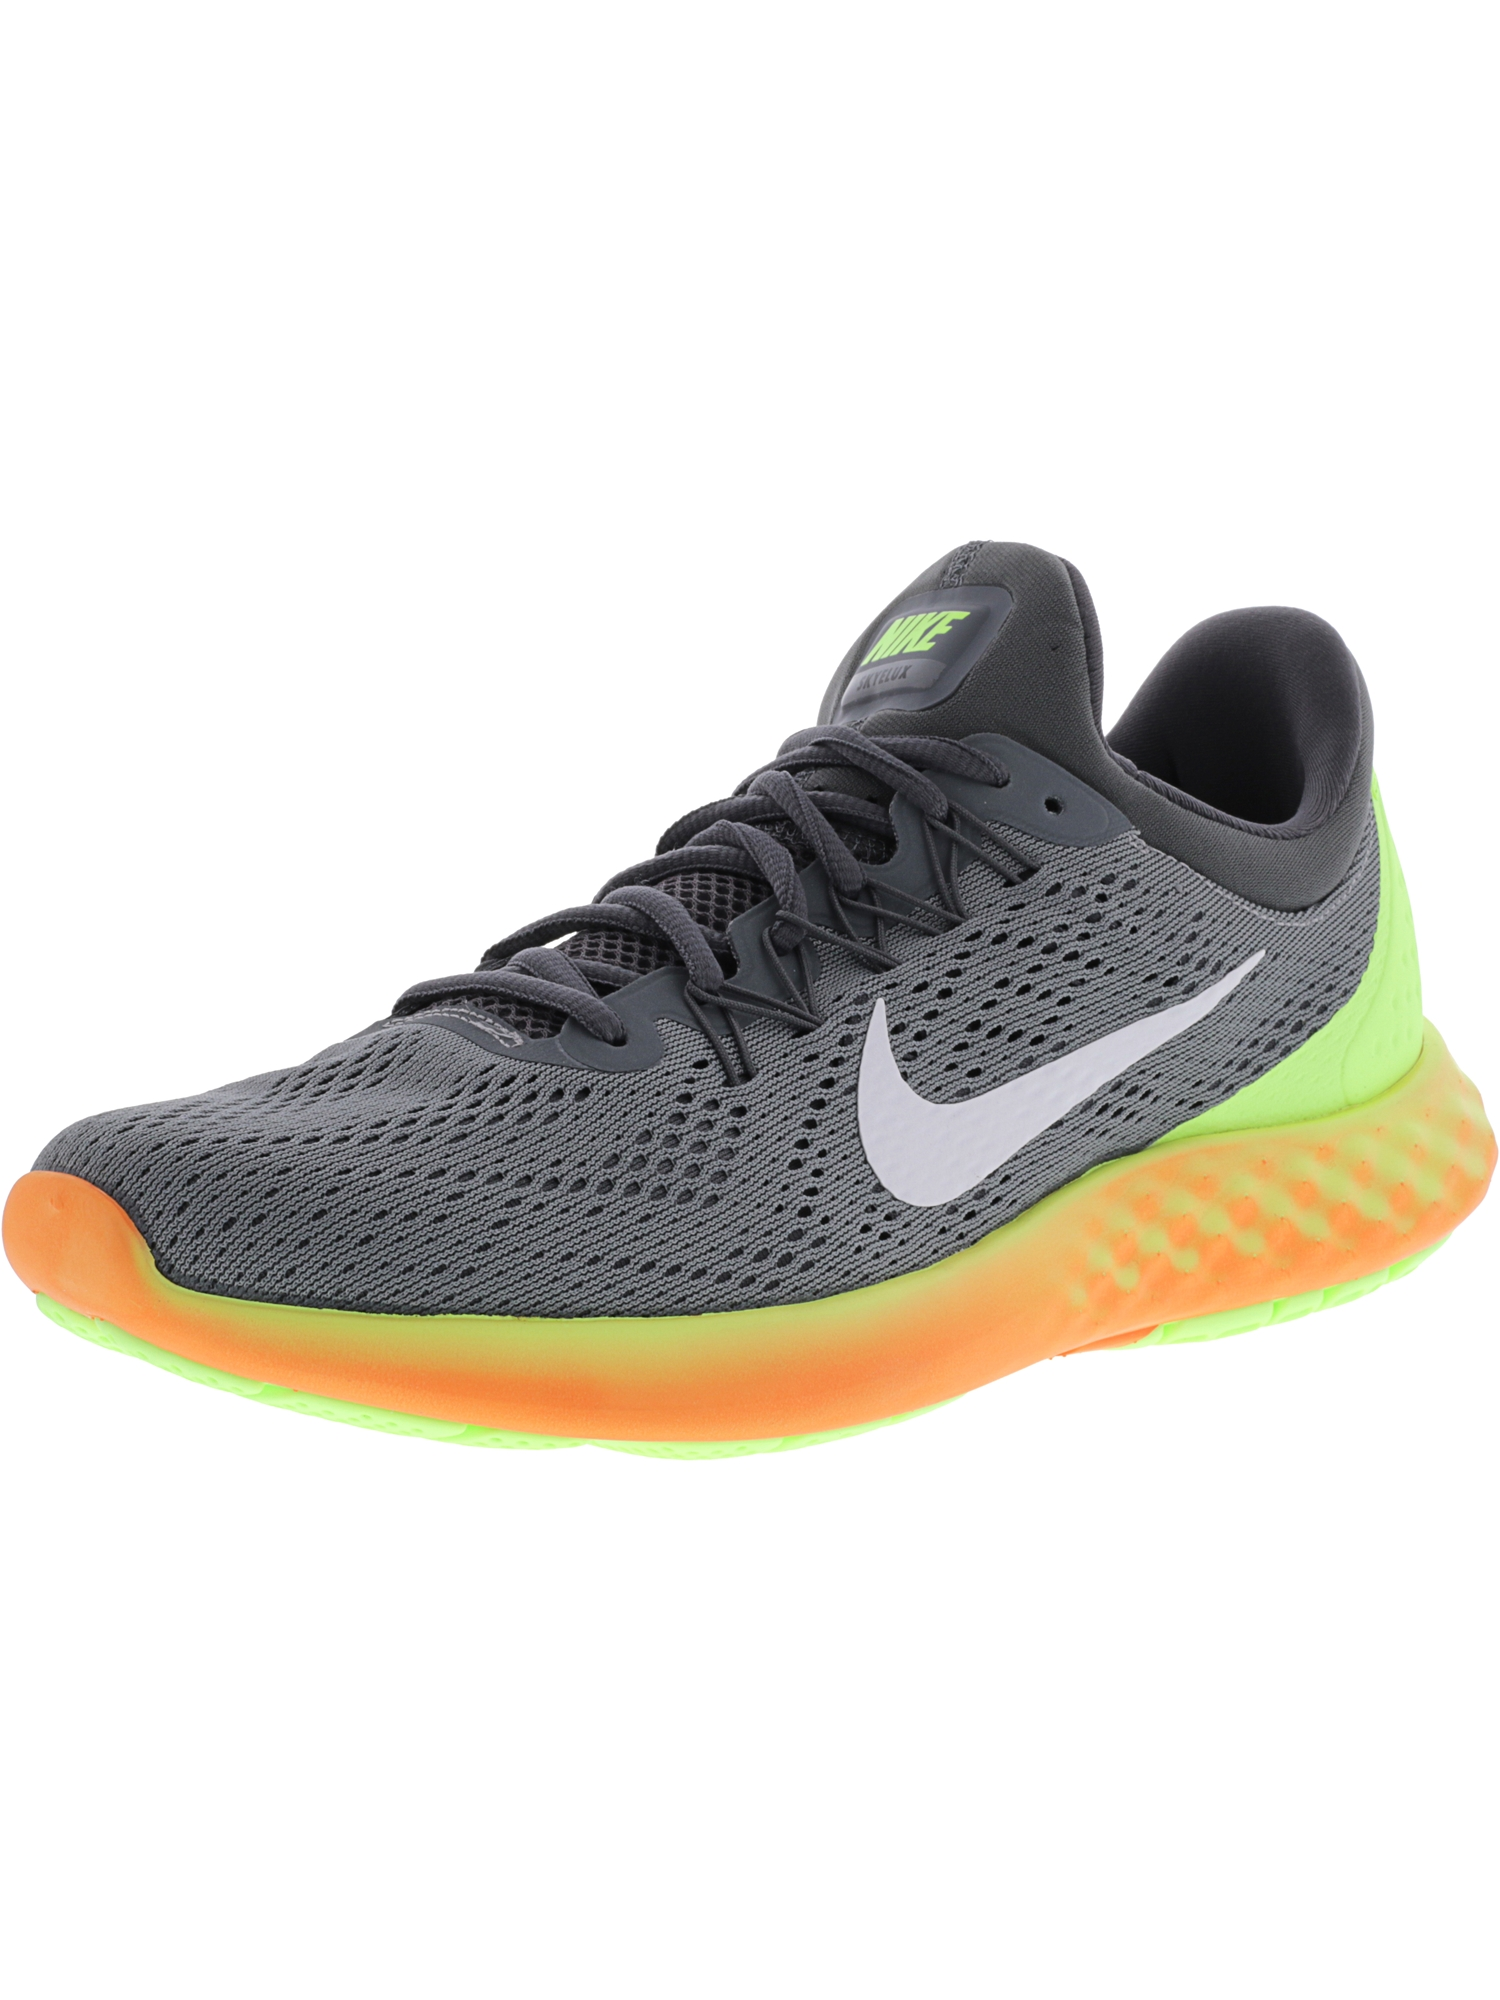 online store 9fd34 92223 ... training shoes 13a06 5e69b  sweden product image nike mens lunar  skyelux cool grey white dark volt ankle high fabric running